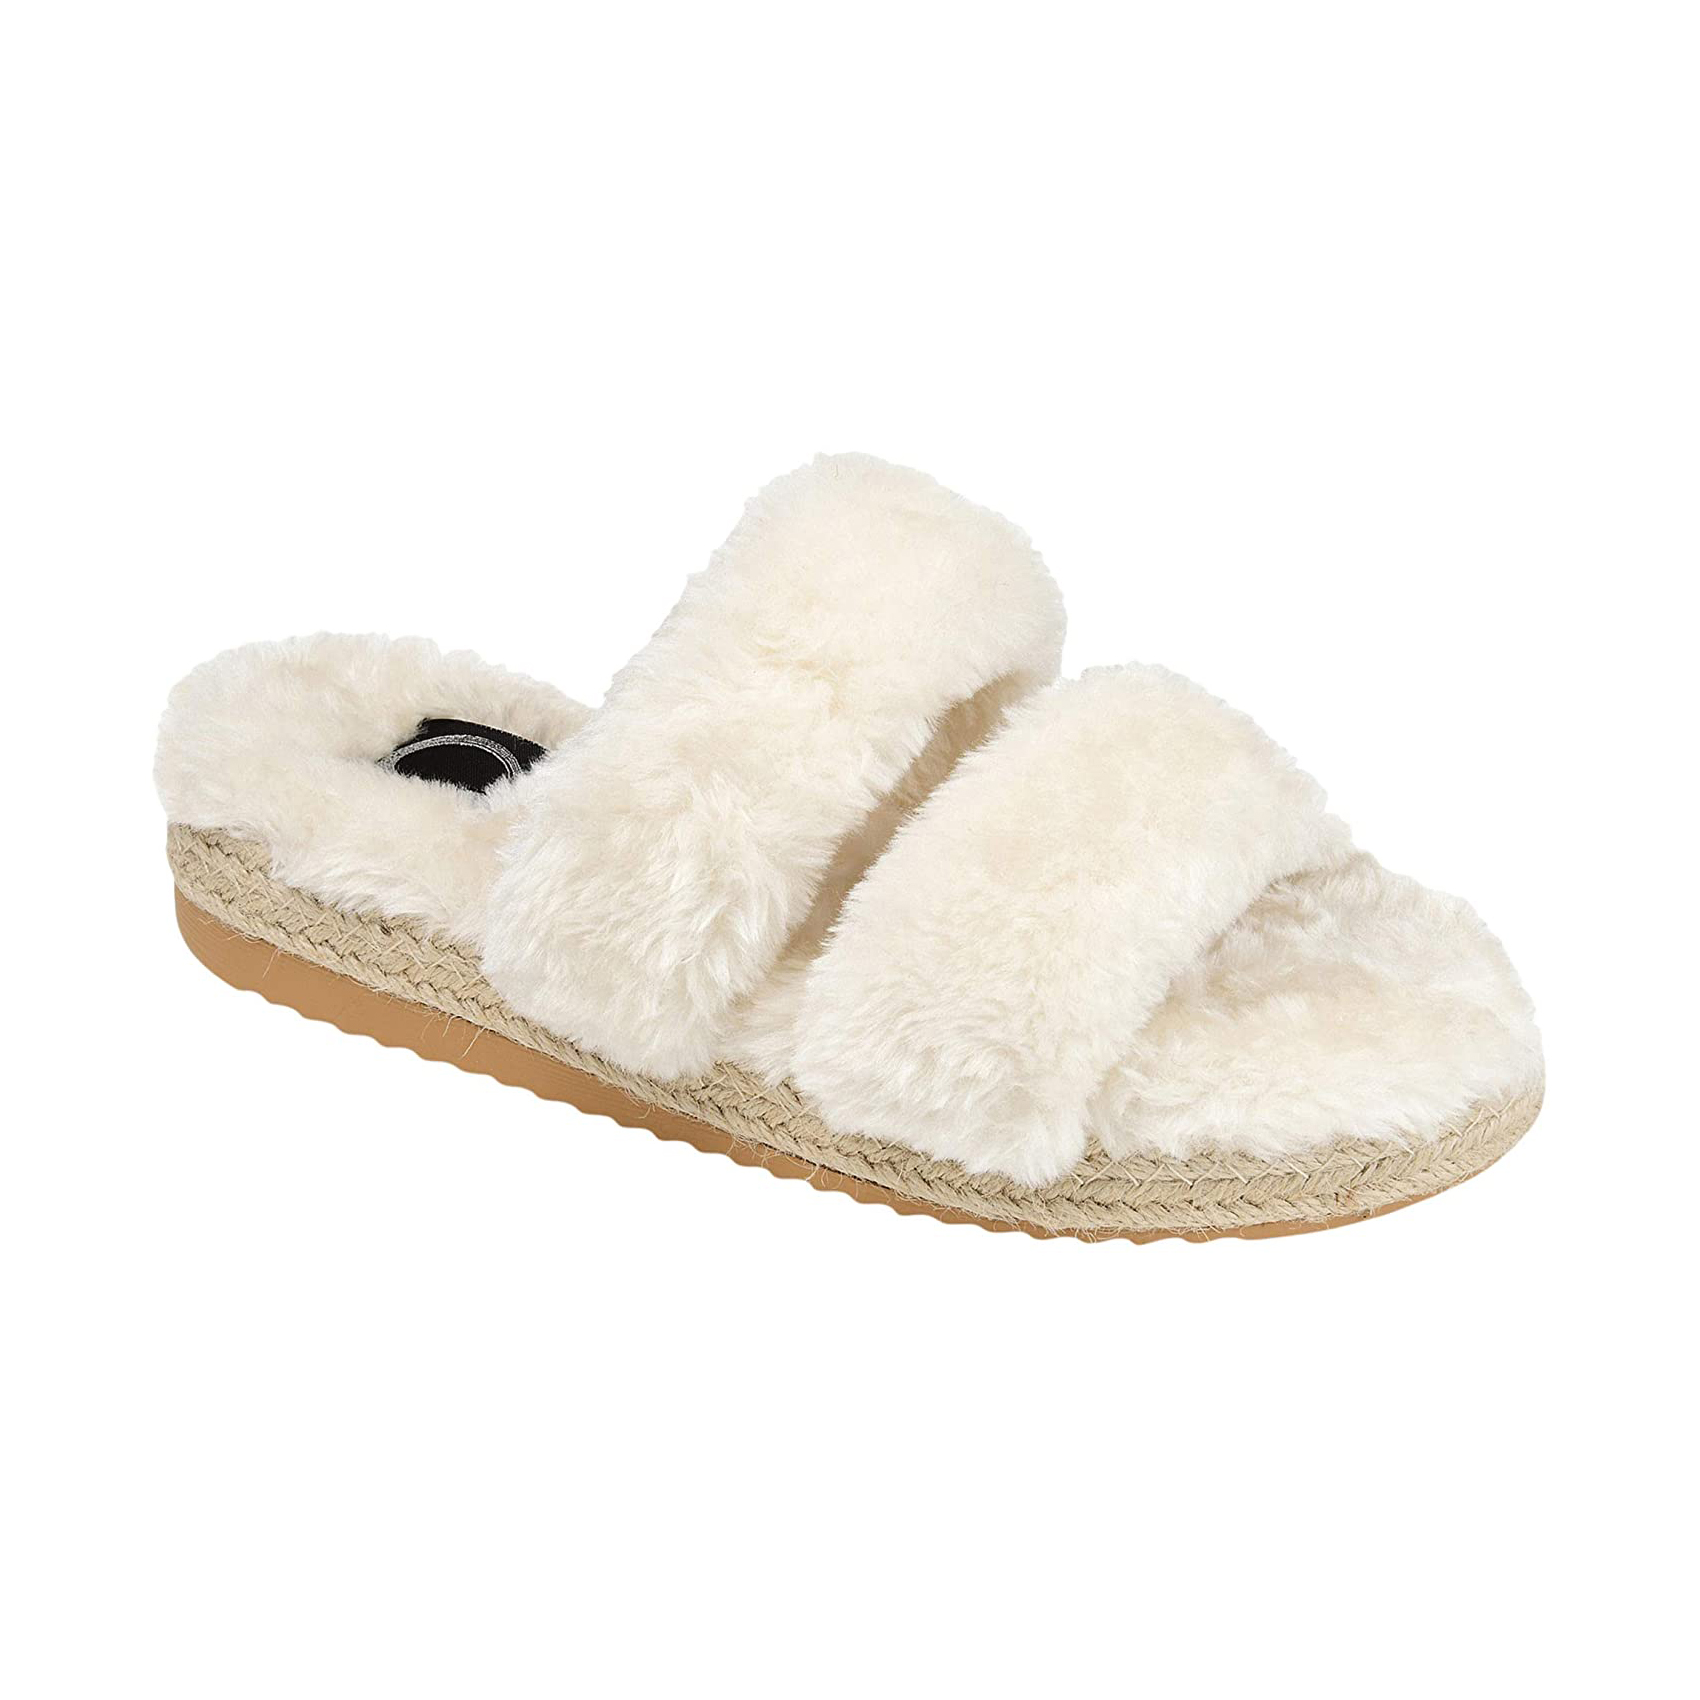 Journee Collection Faux Fur Relaxx Slipper Wedding Day Bridal Slippers